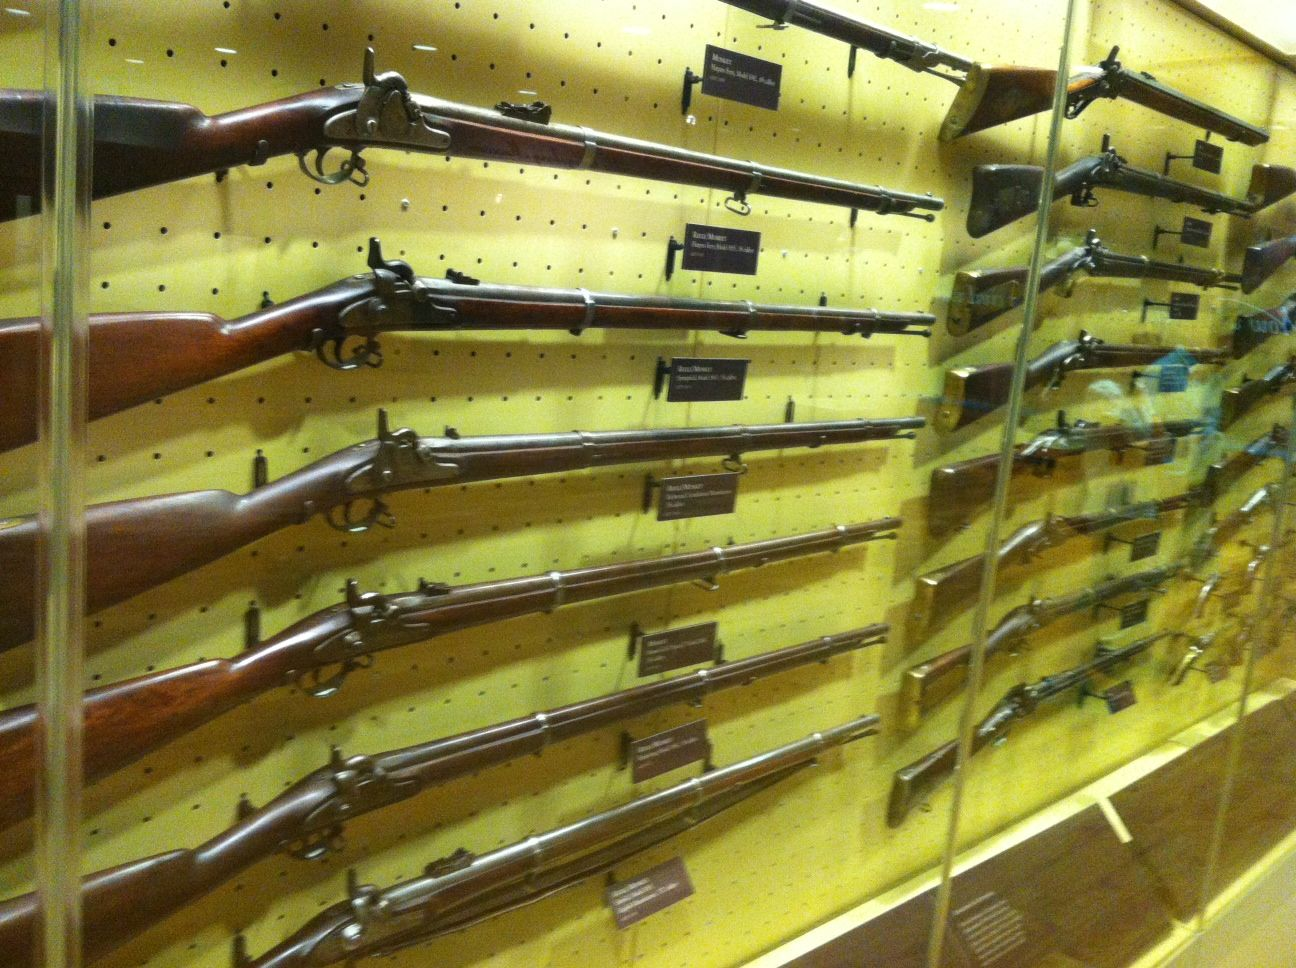 Rifles at Gettysburg National Military Park Museum and Visitor Center #Battlefield #CivilWar #Confederate #Union #Rebel #Yankee